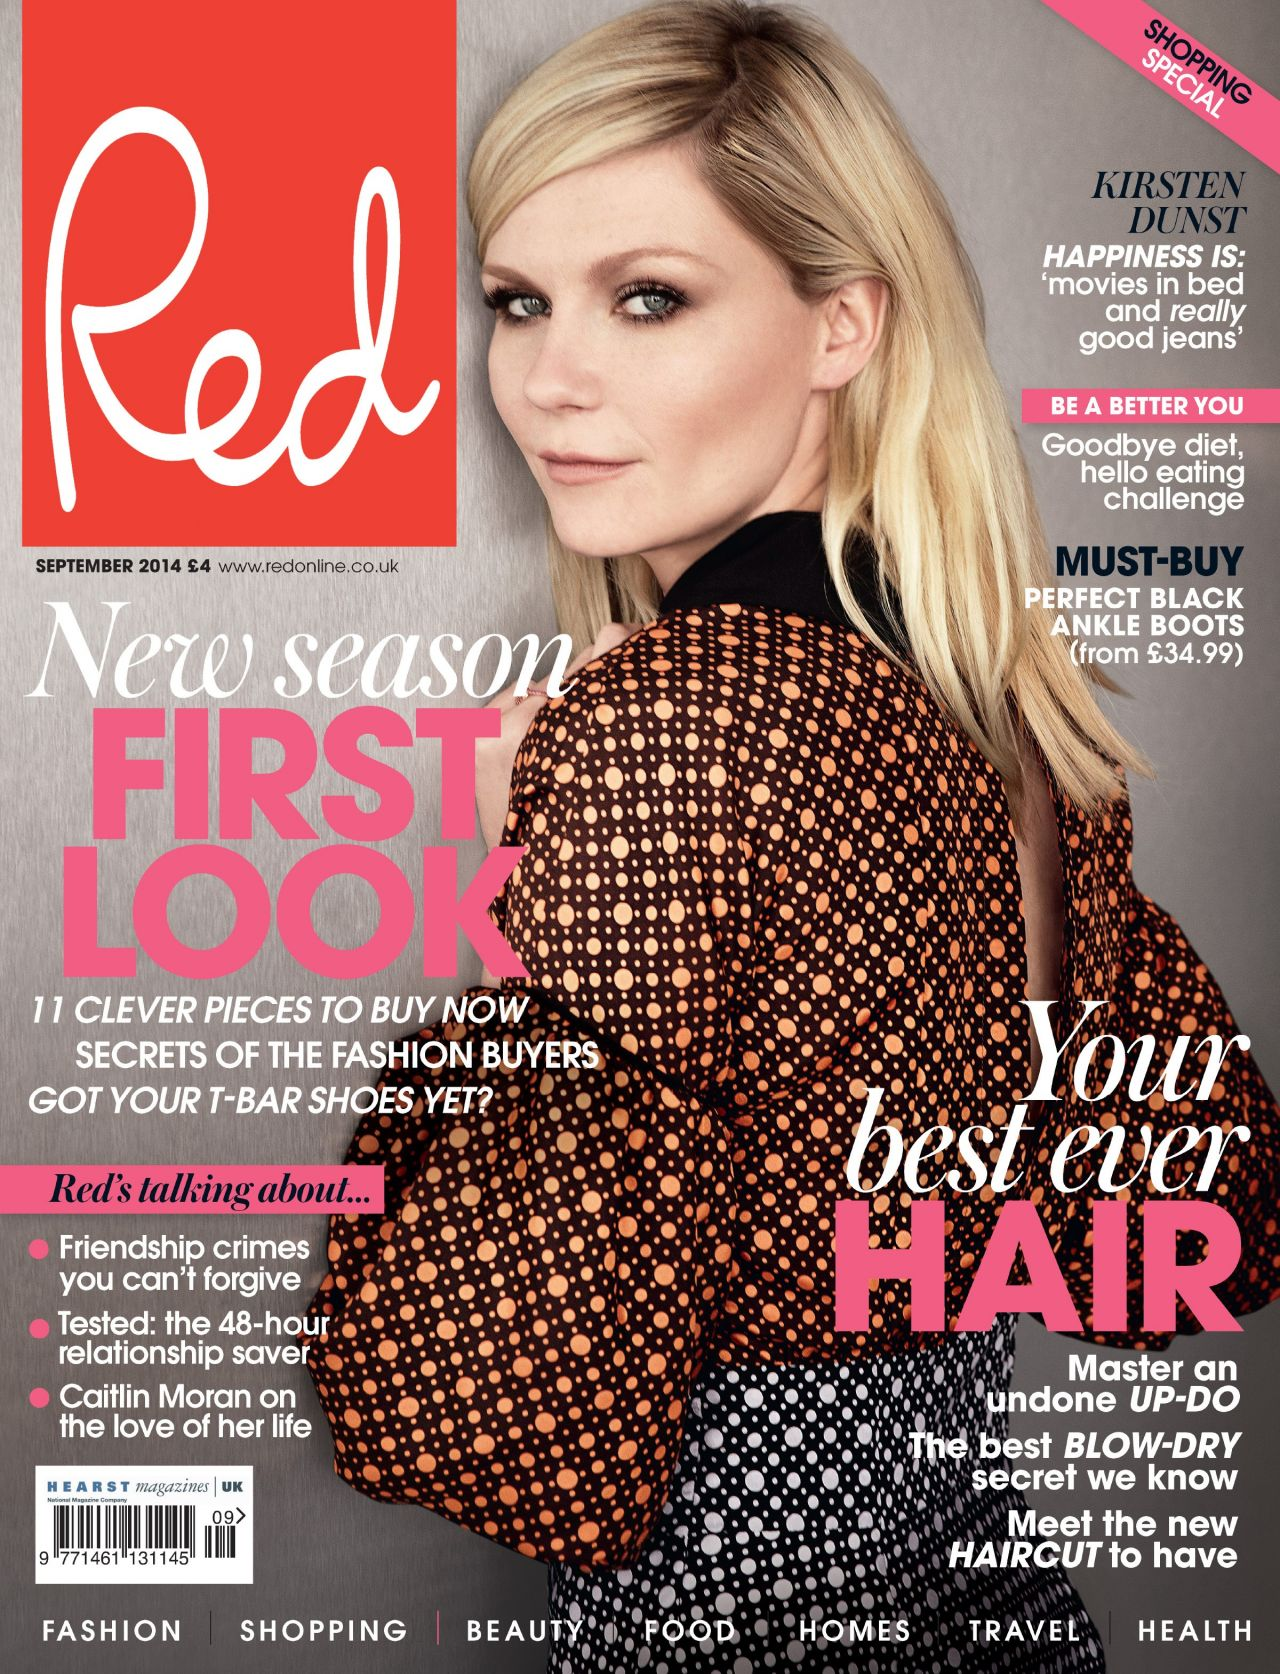 Kirsten Dunst - Red Magazine (UK) - September 2014 Cover